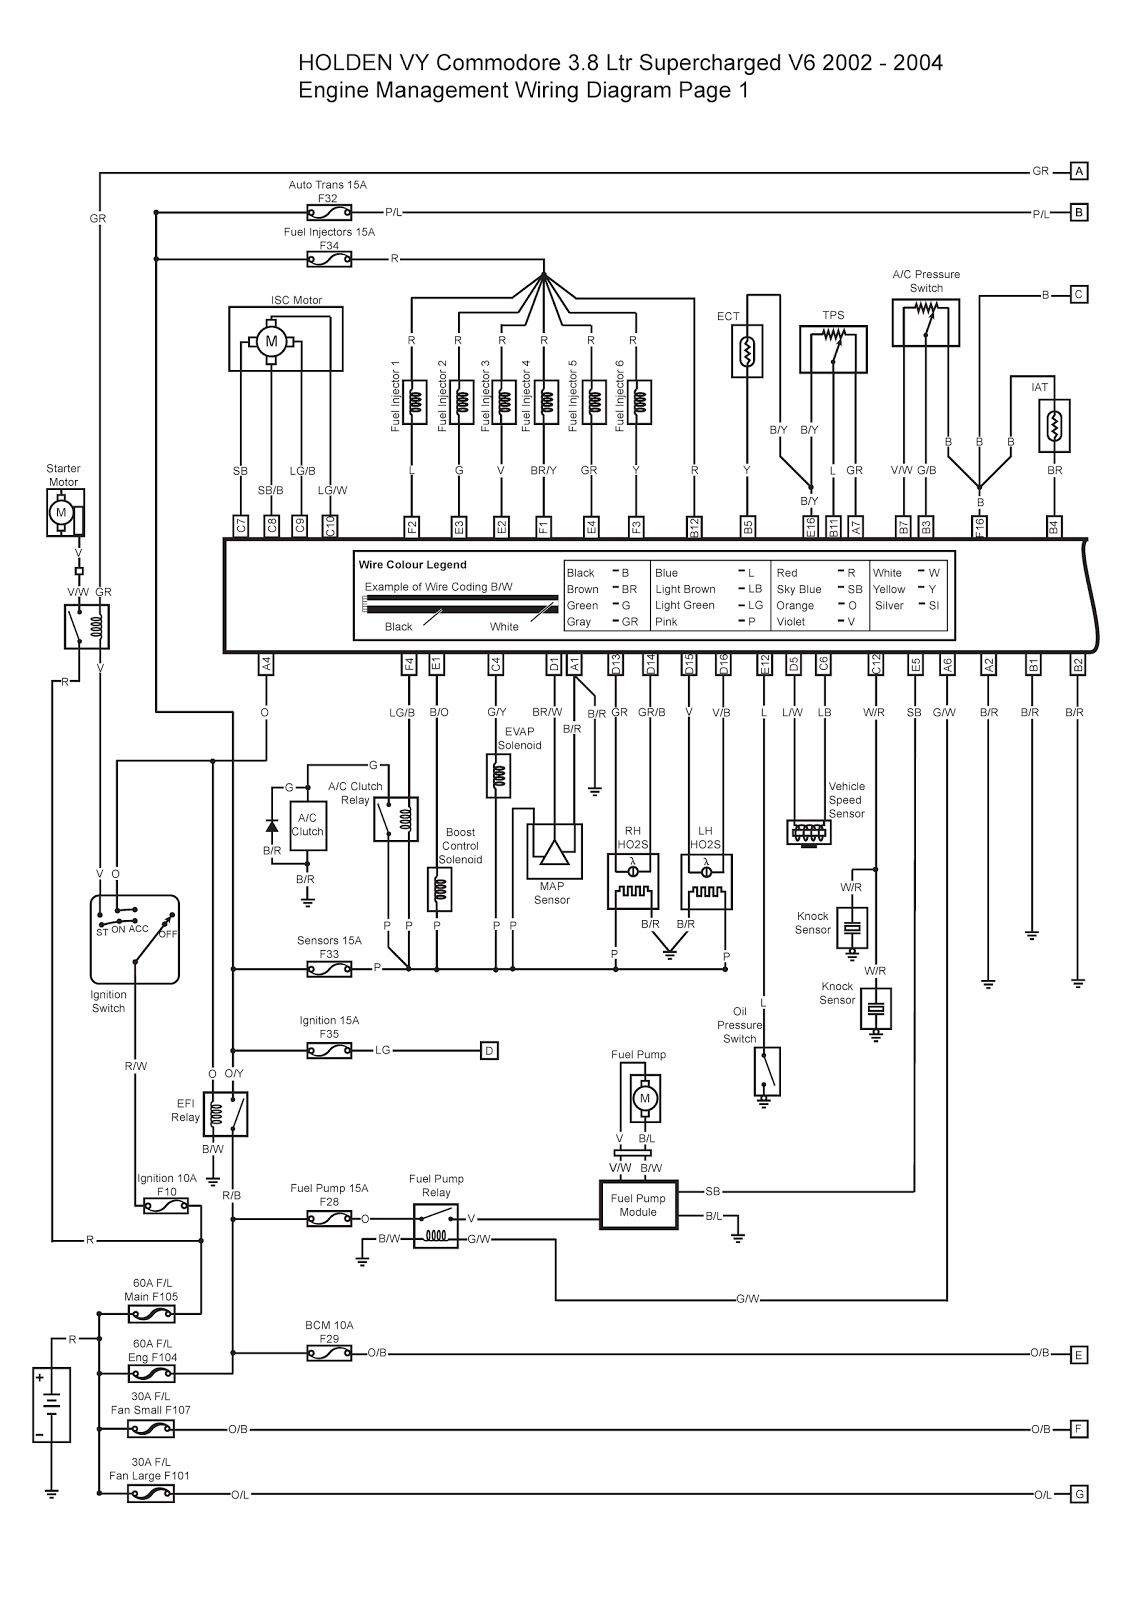 0001 vz wiring diagram efcaviation com vz bcm wiring diagram at panicattacktreatment.co